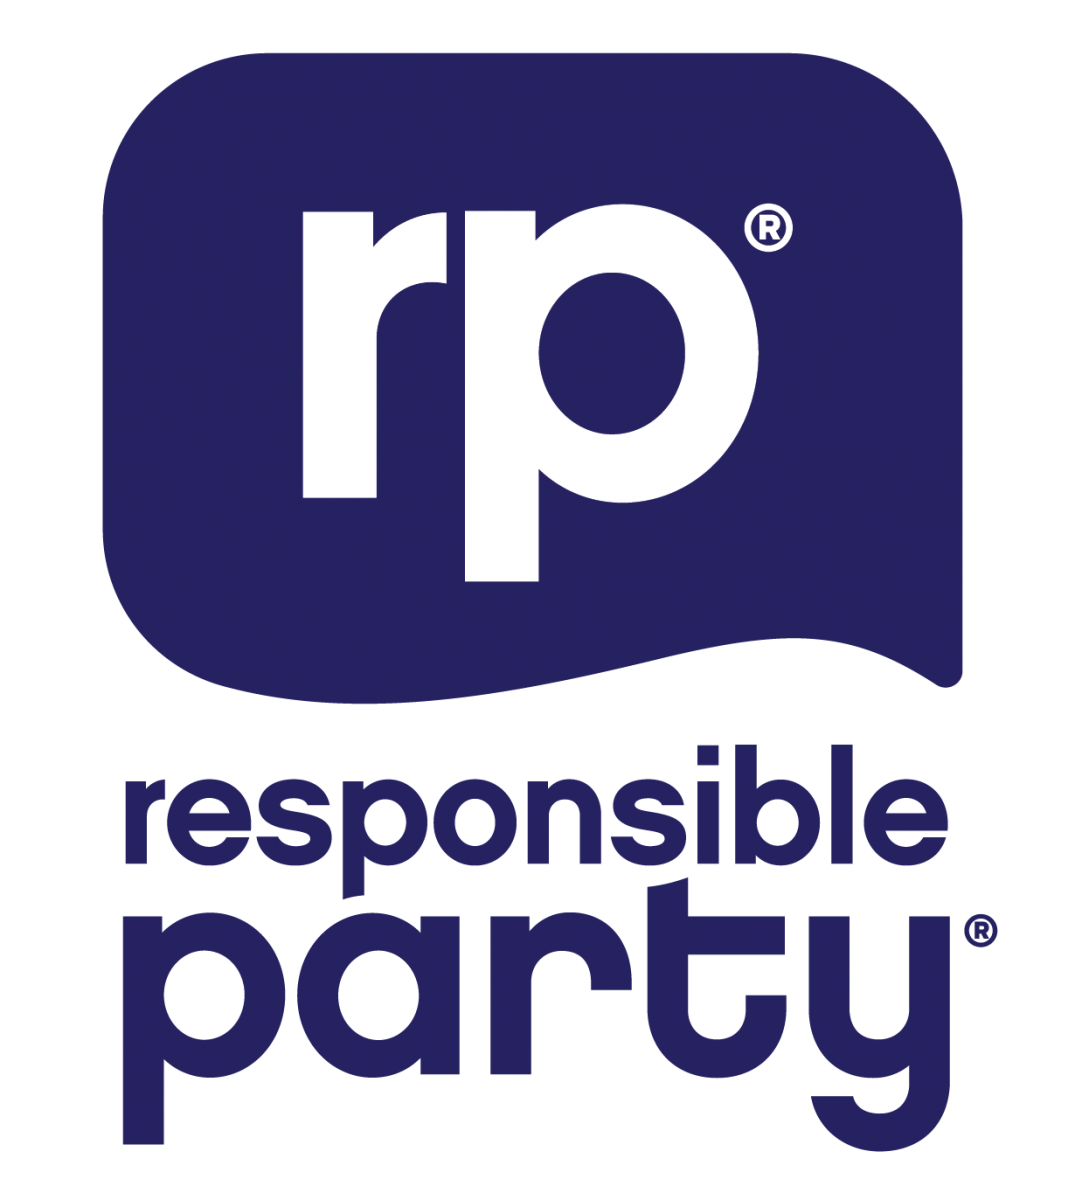 Responsible Party logo